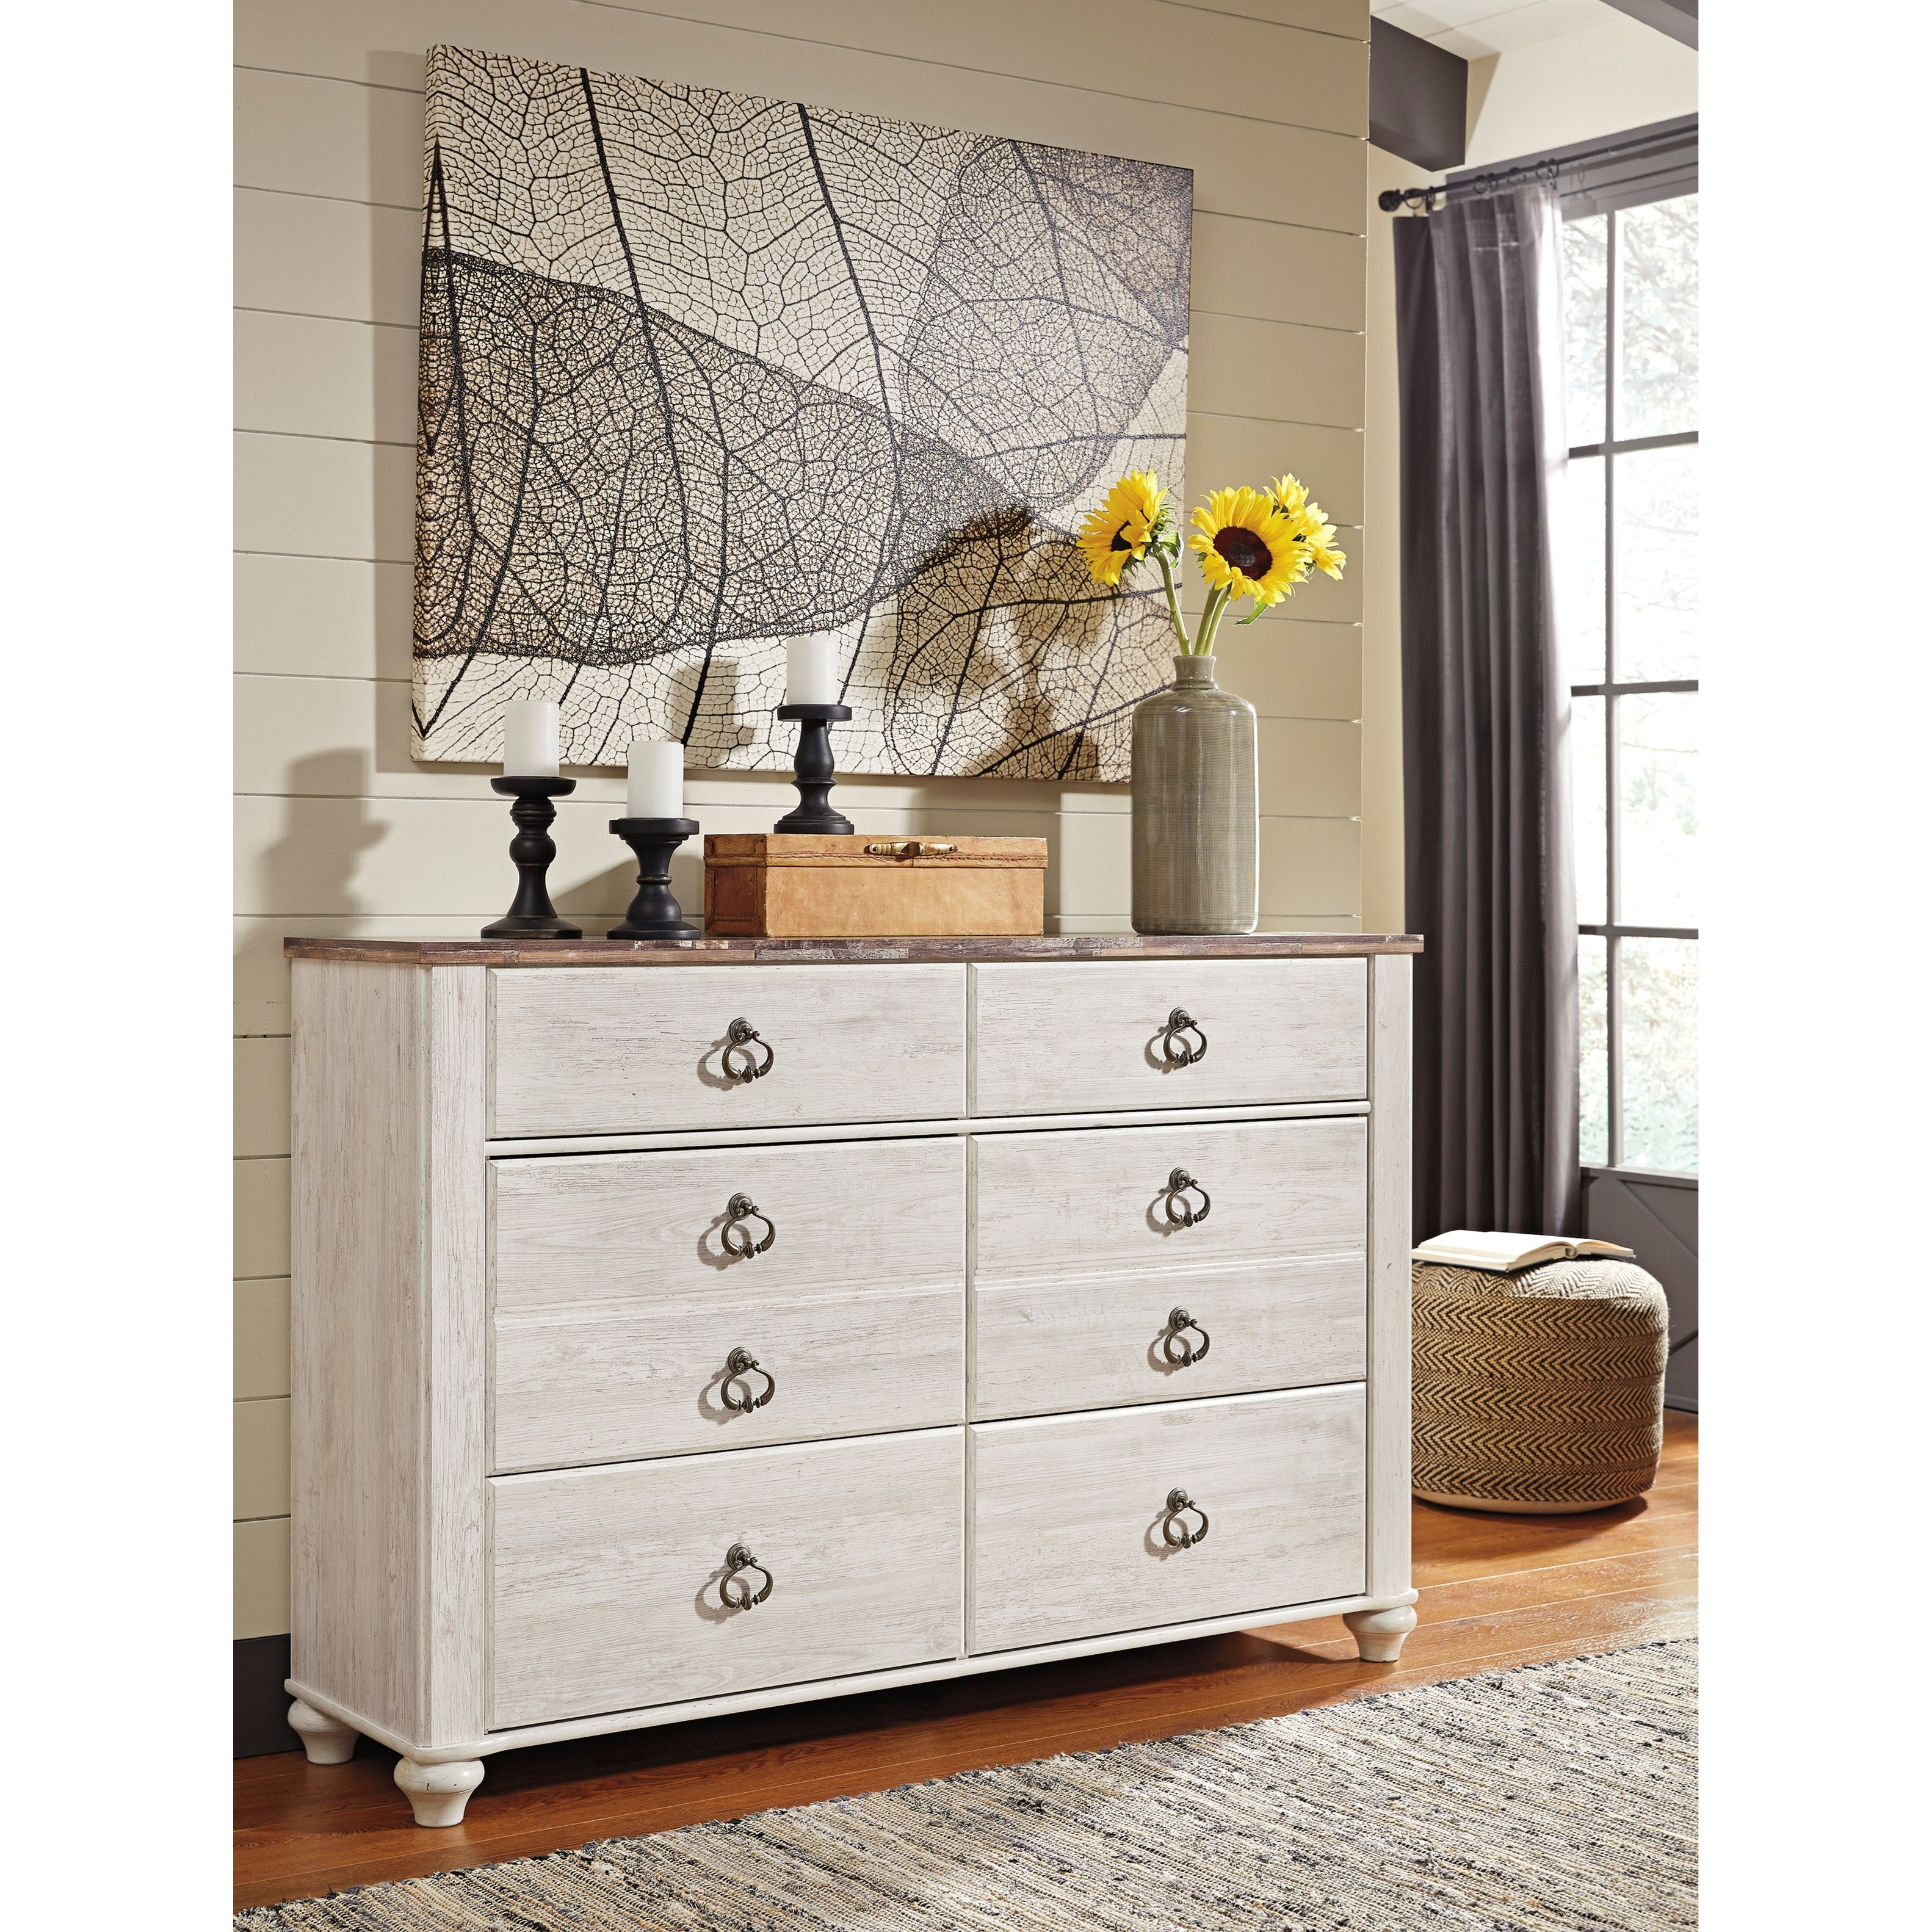 Signature Design By Ashley Willowton B267-31 6-Drawer